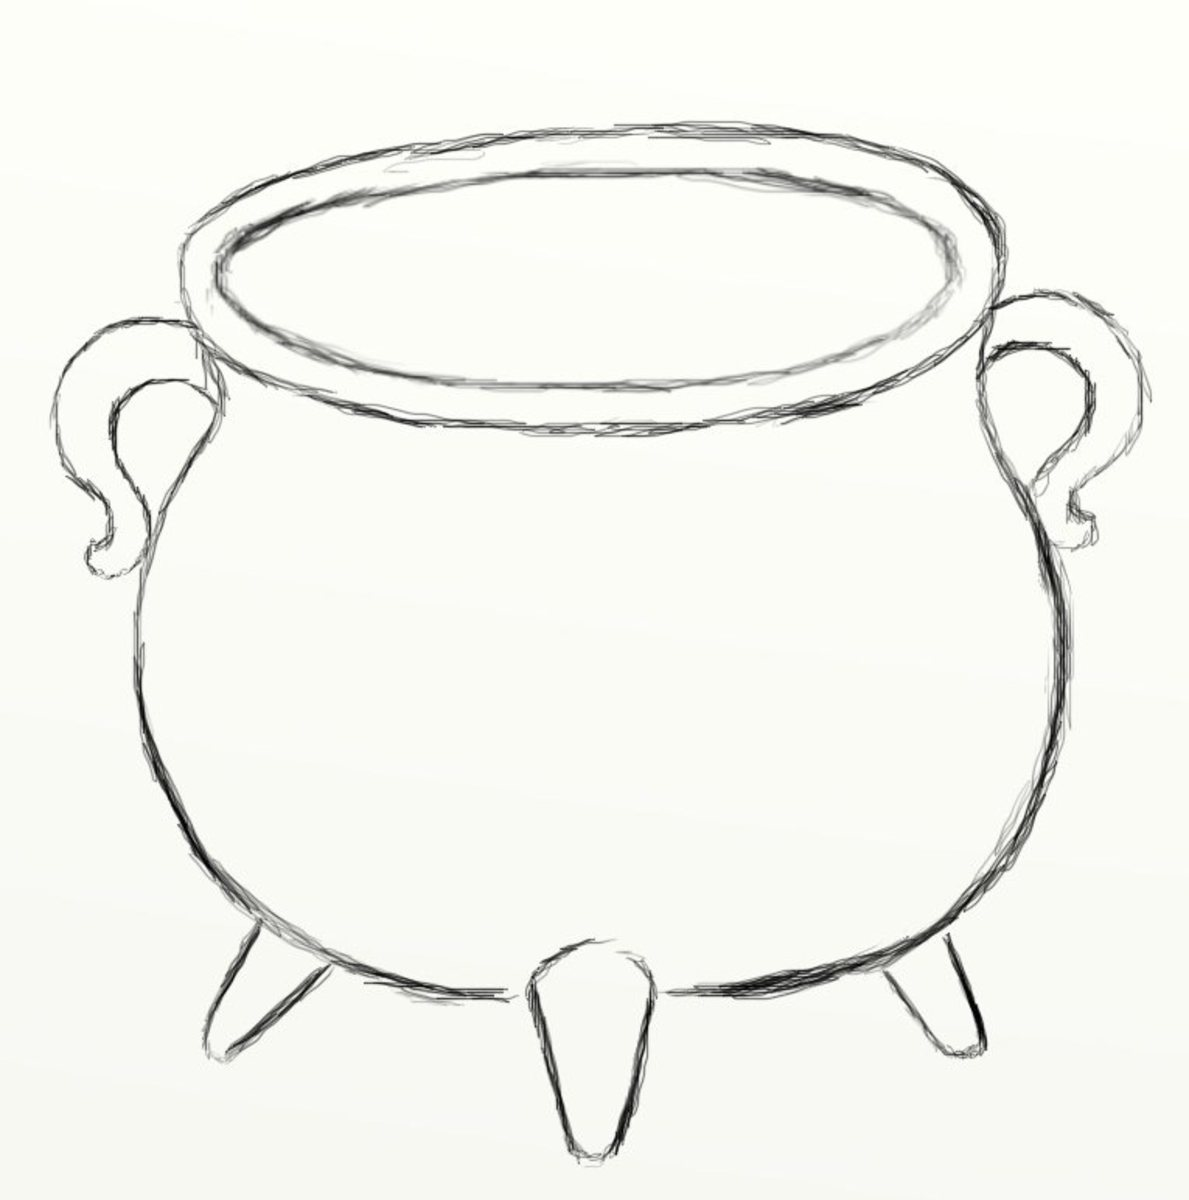 Now draw the legs on the outer portion of the cauldron just 1 leg on either side of the belly